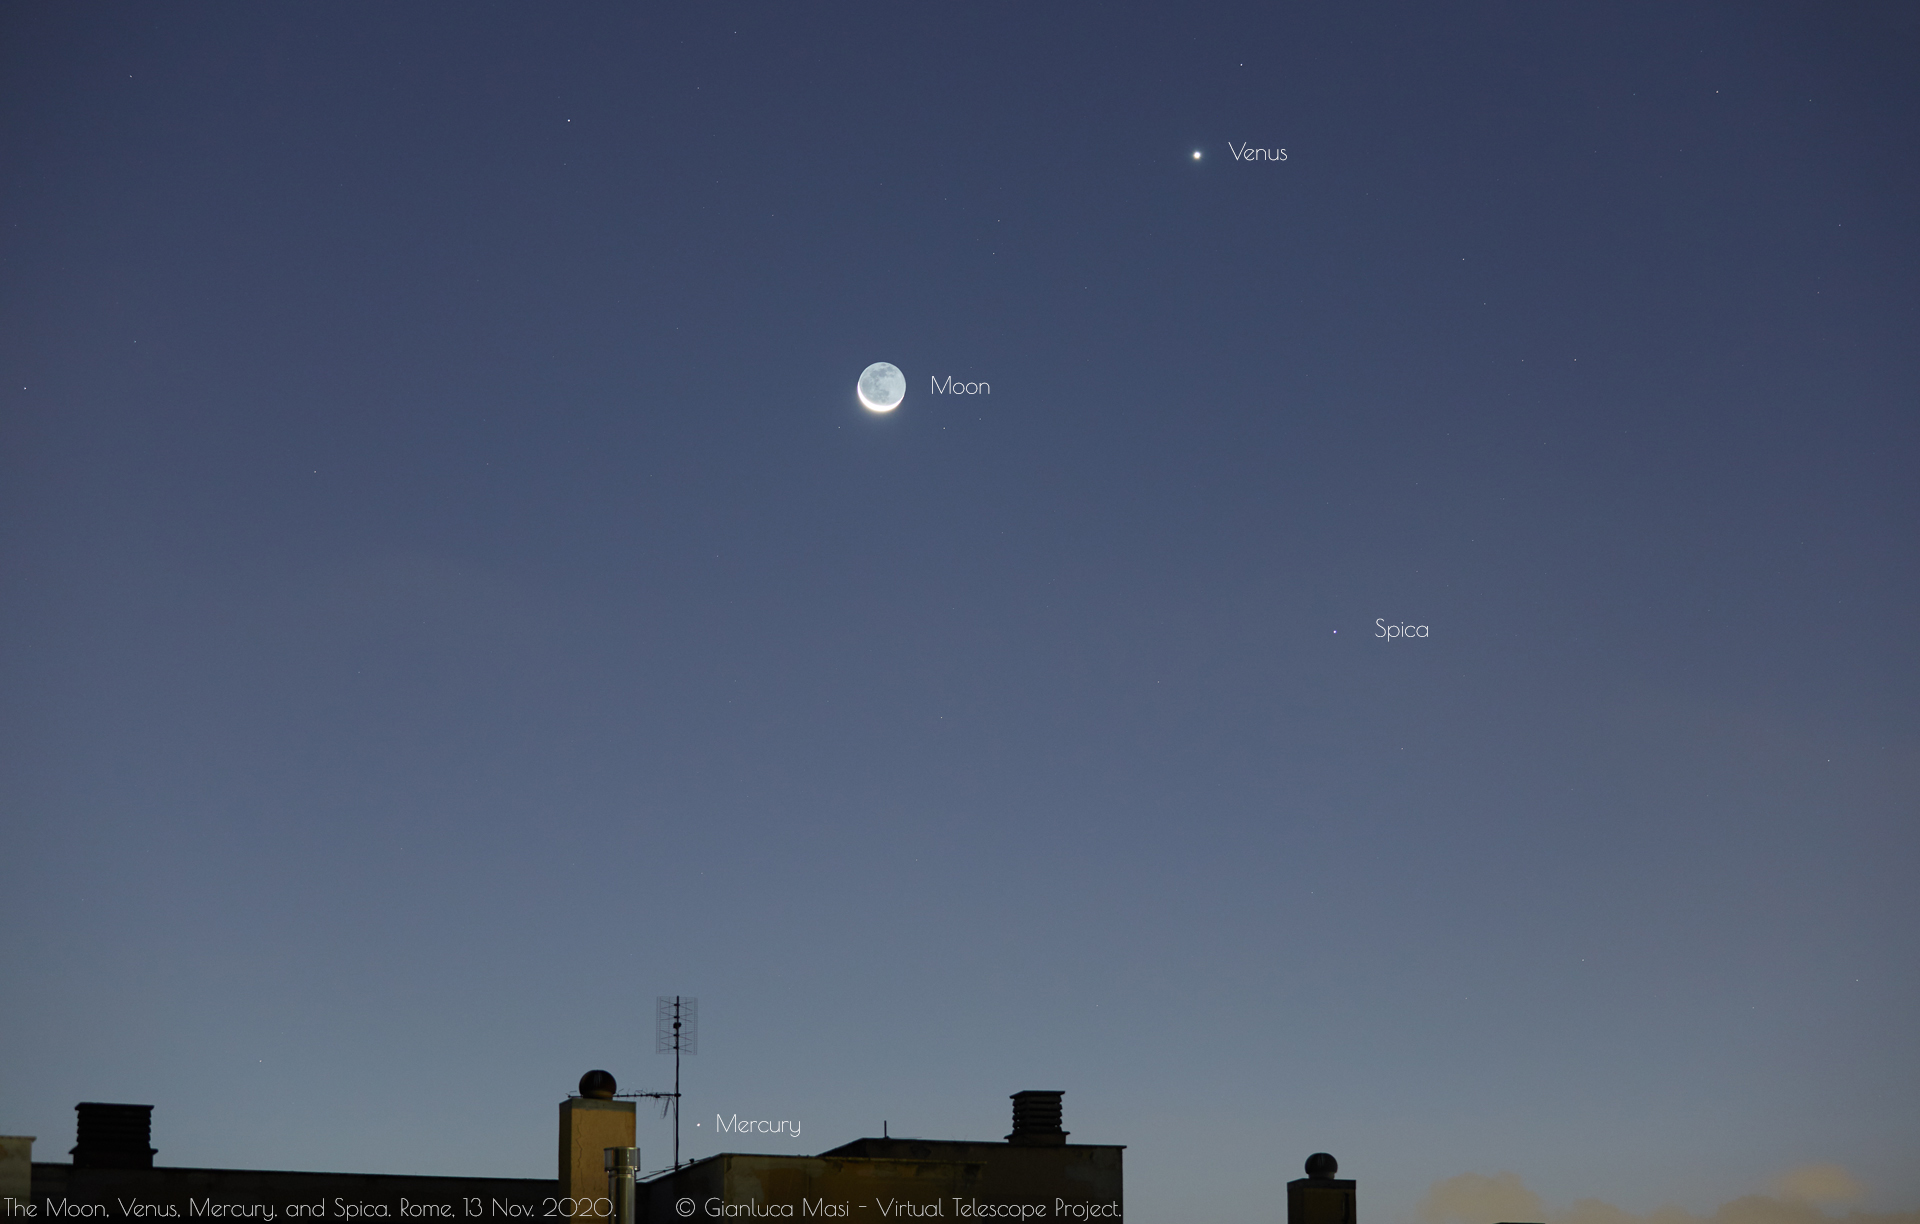 The Moon, Venus and Mercury properly labelled. 13 Nov. 2020.